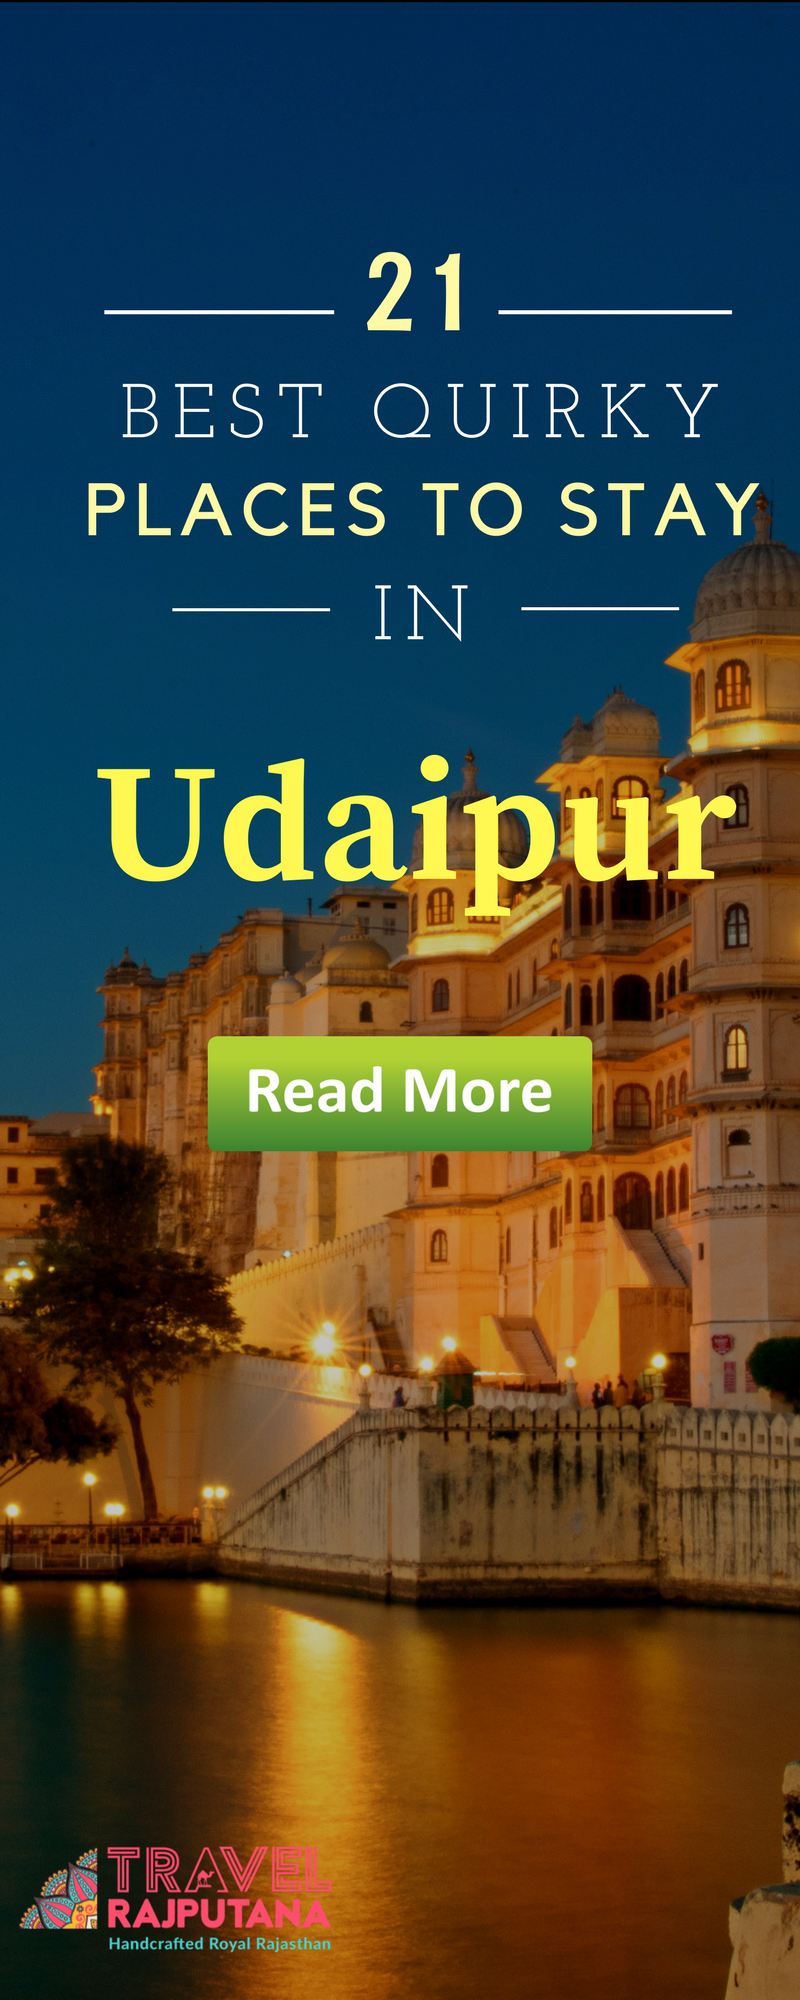 Where To Stay In Udaipur Find Out The Best Hotels To Stay In